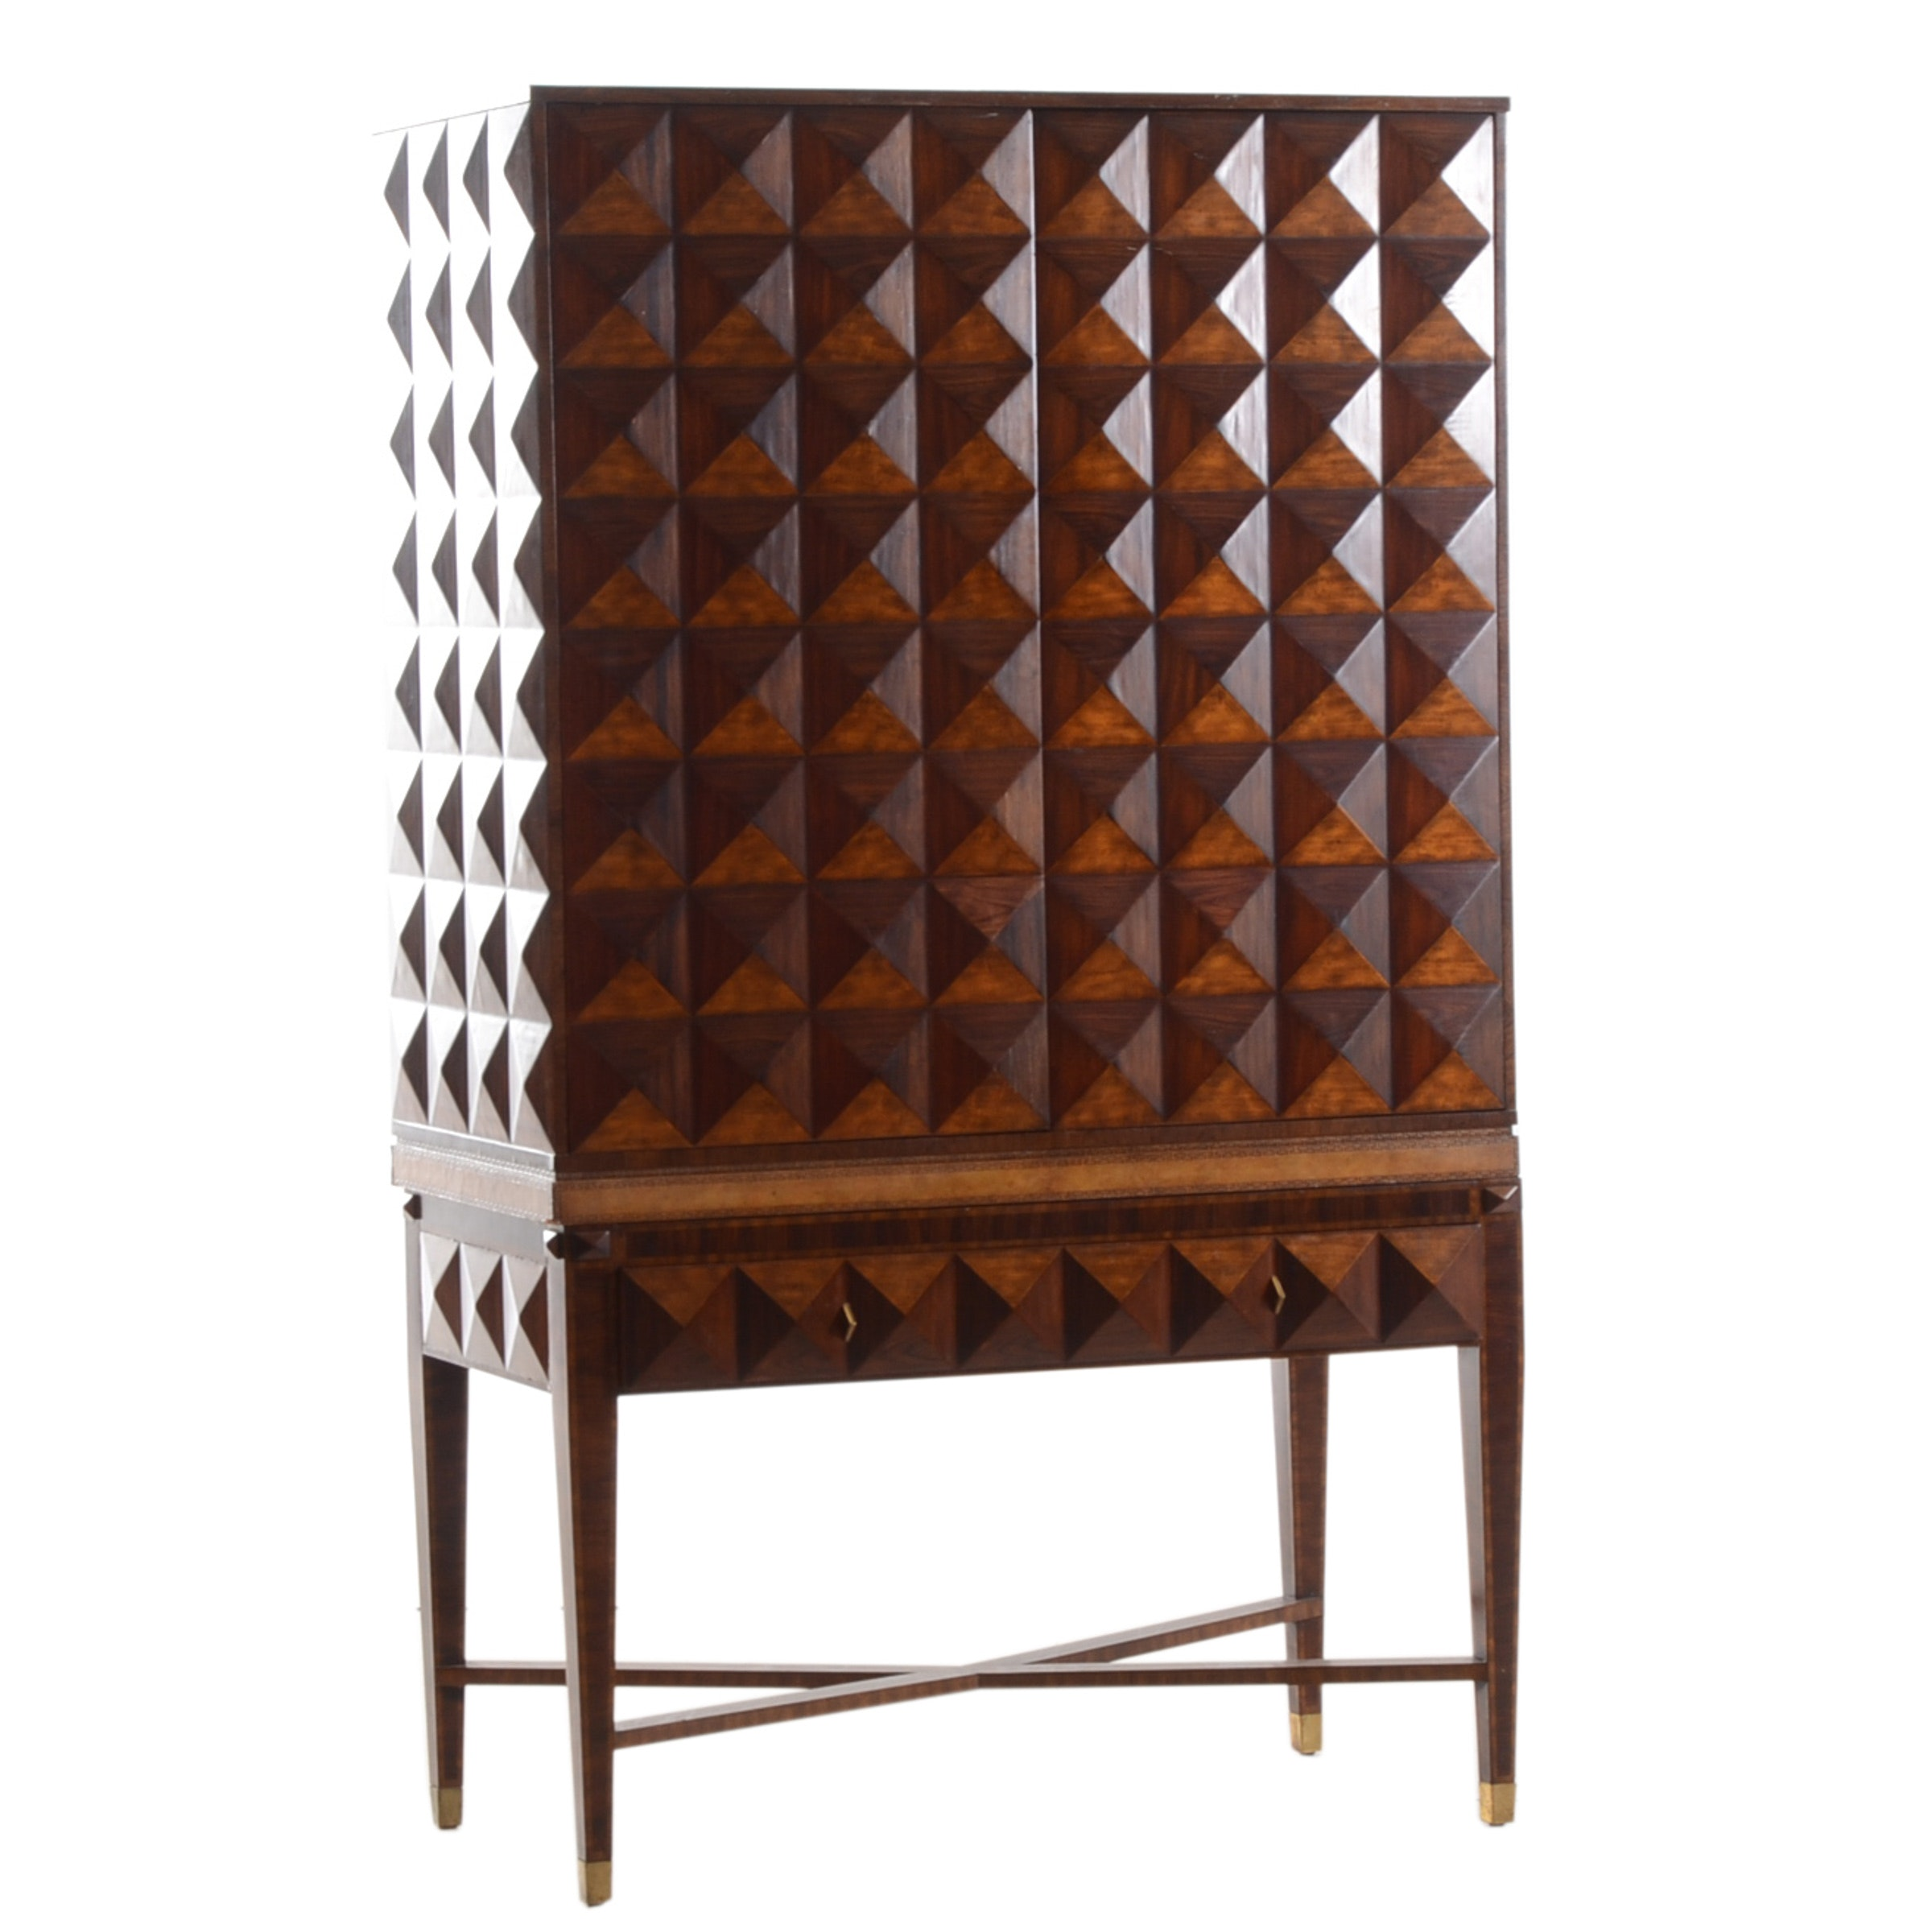 Maitland-Smith Faceted Cabinet